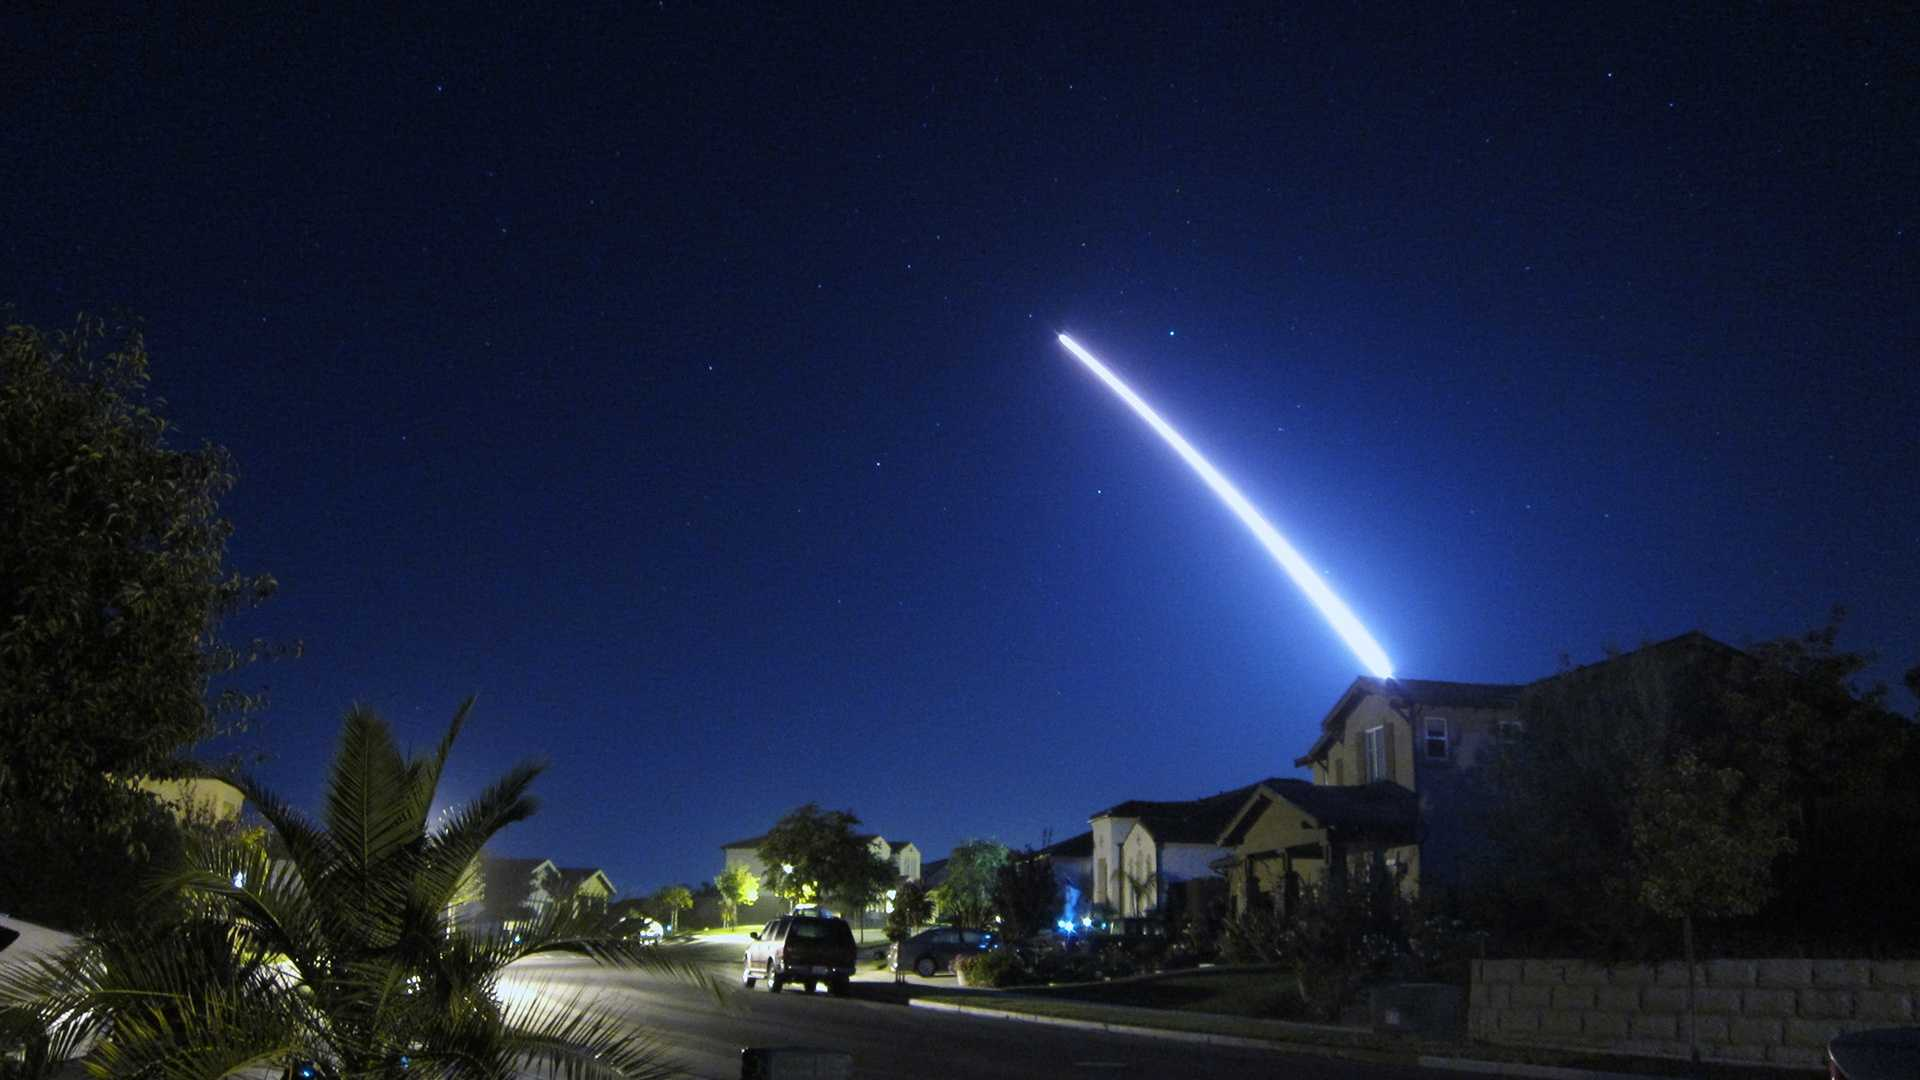 Lt. Col. Andy Wulfestieg, USAF, shot this photograph from Lompoc, Calif.